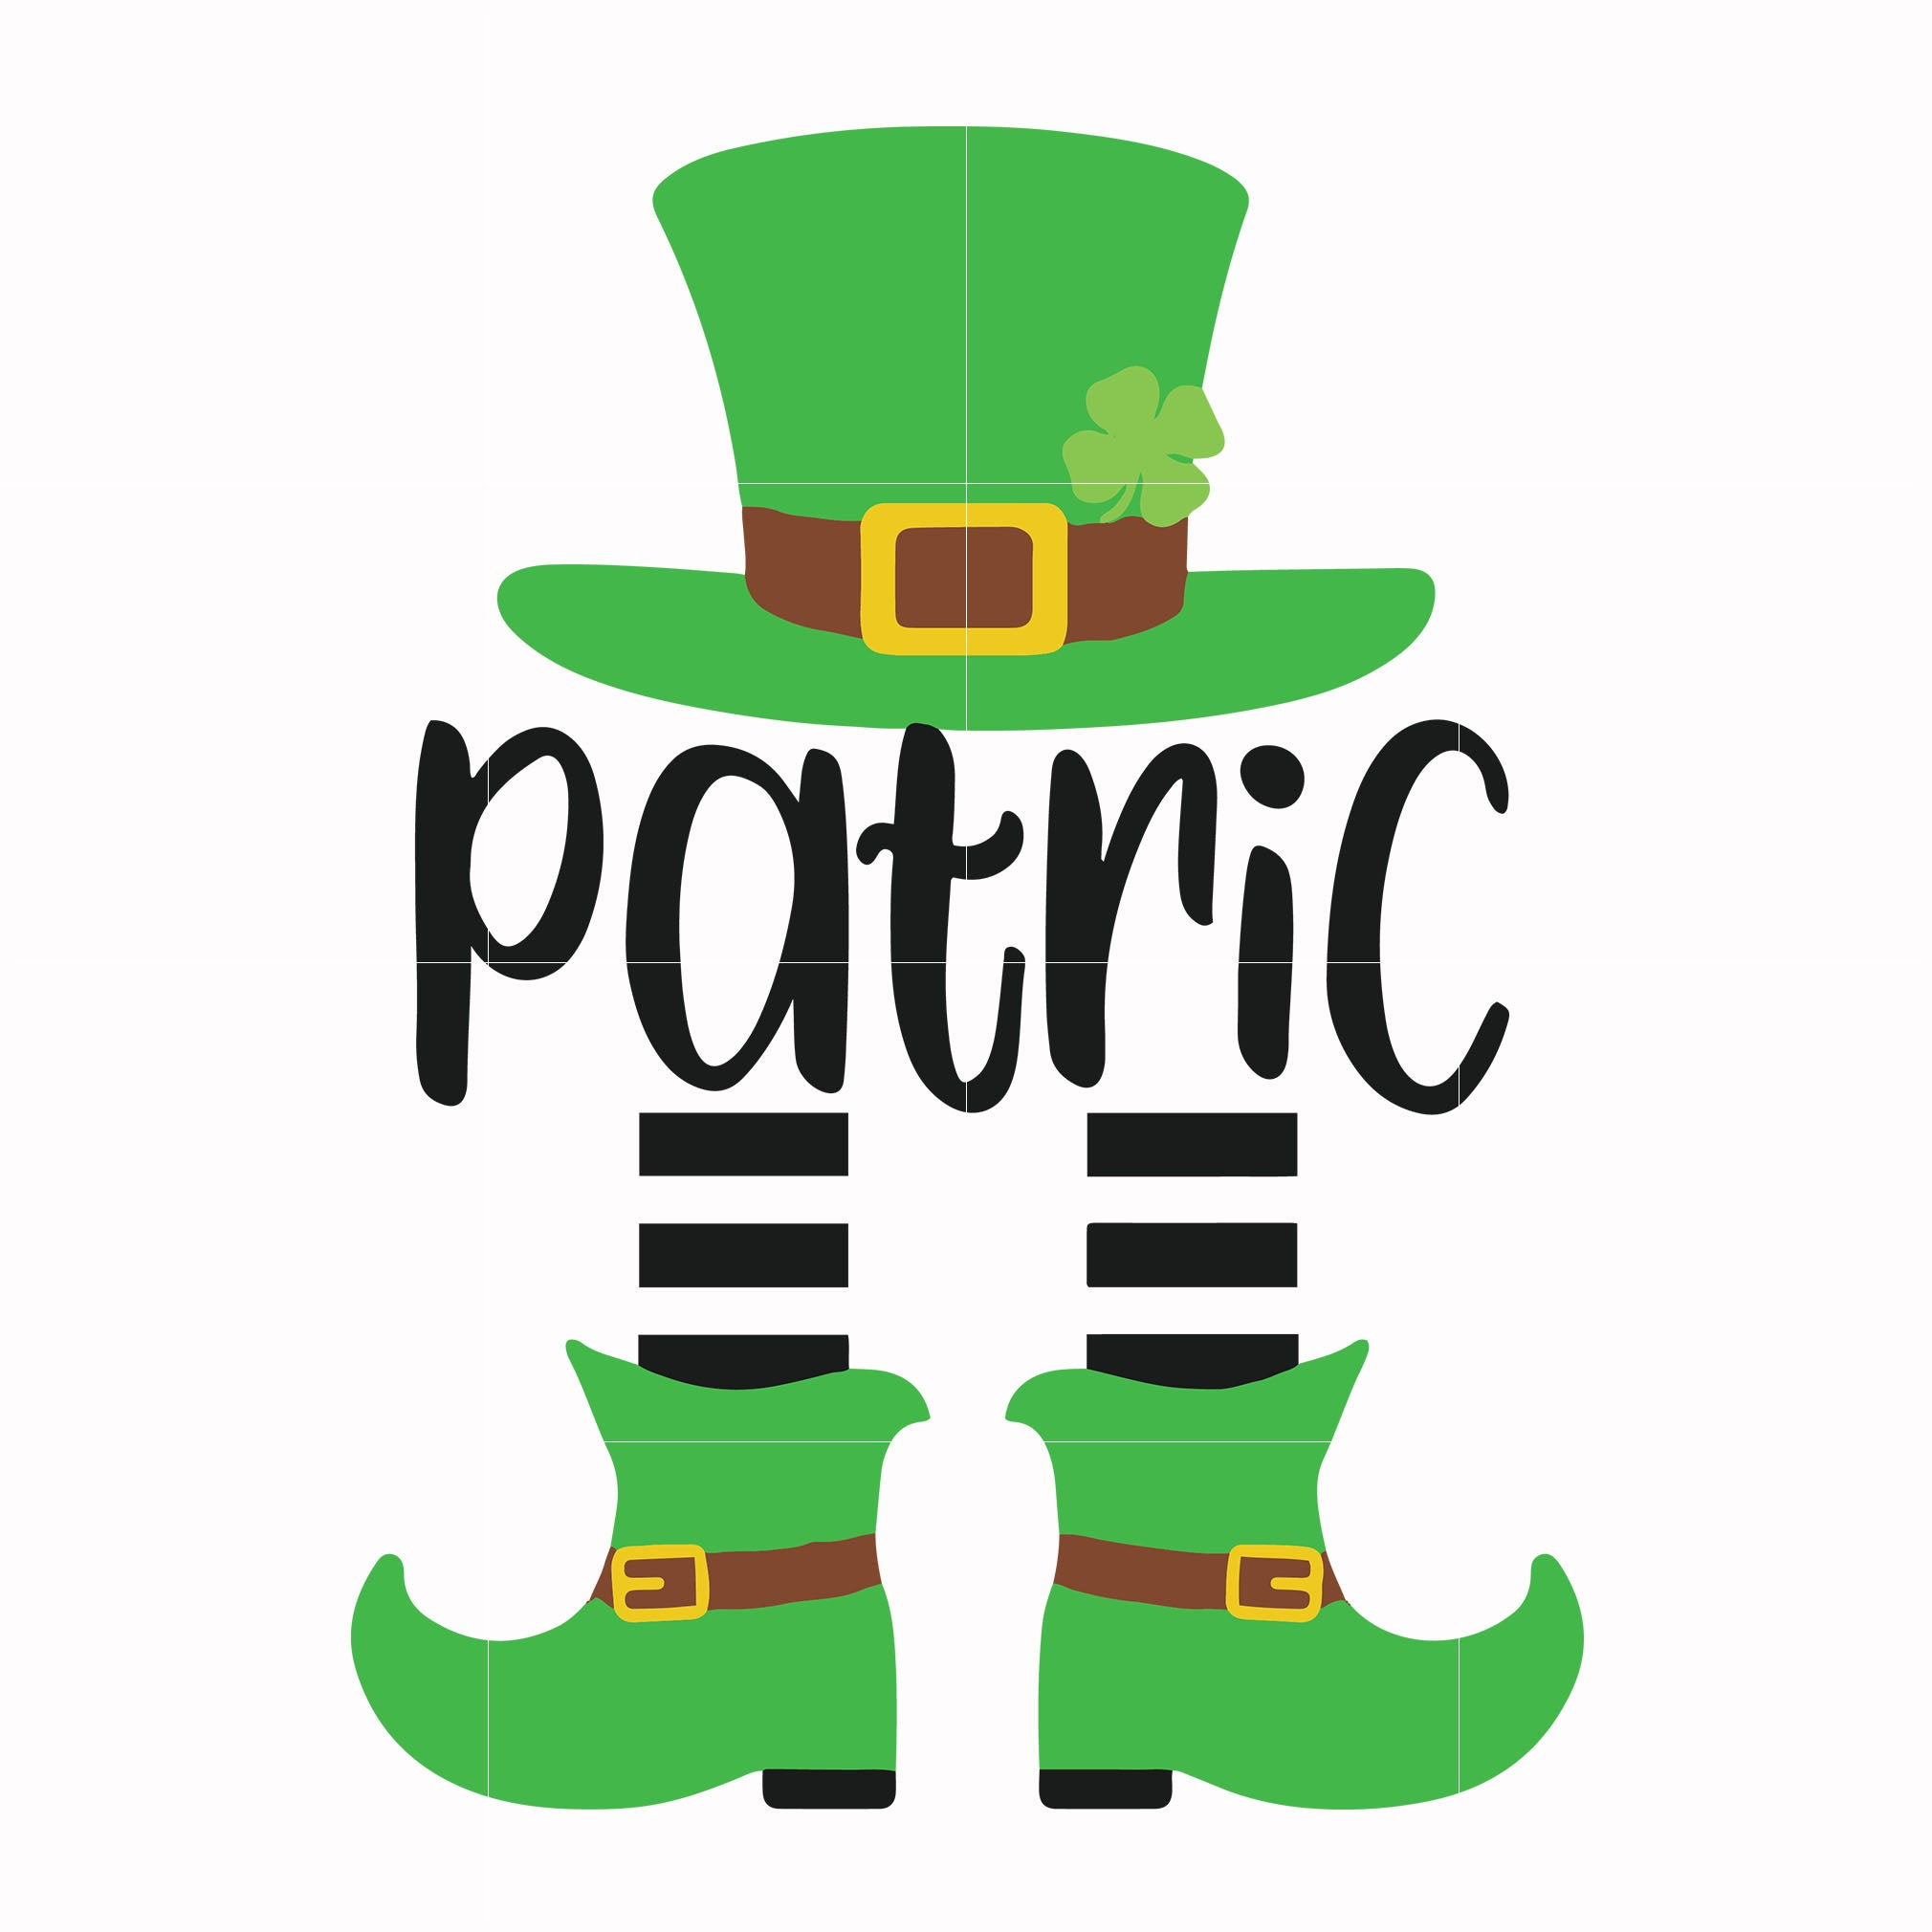 Patric leprechaun svg, shamrock svg, st patrick day svg, leprechaun svg, patrick svg, leprechaun svg, dxf, eps, png digital file